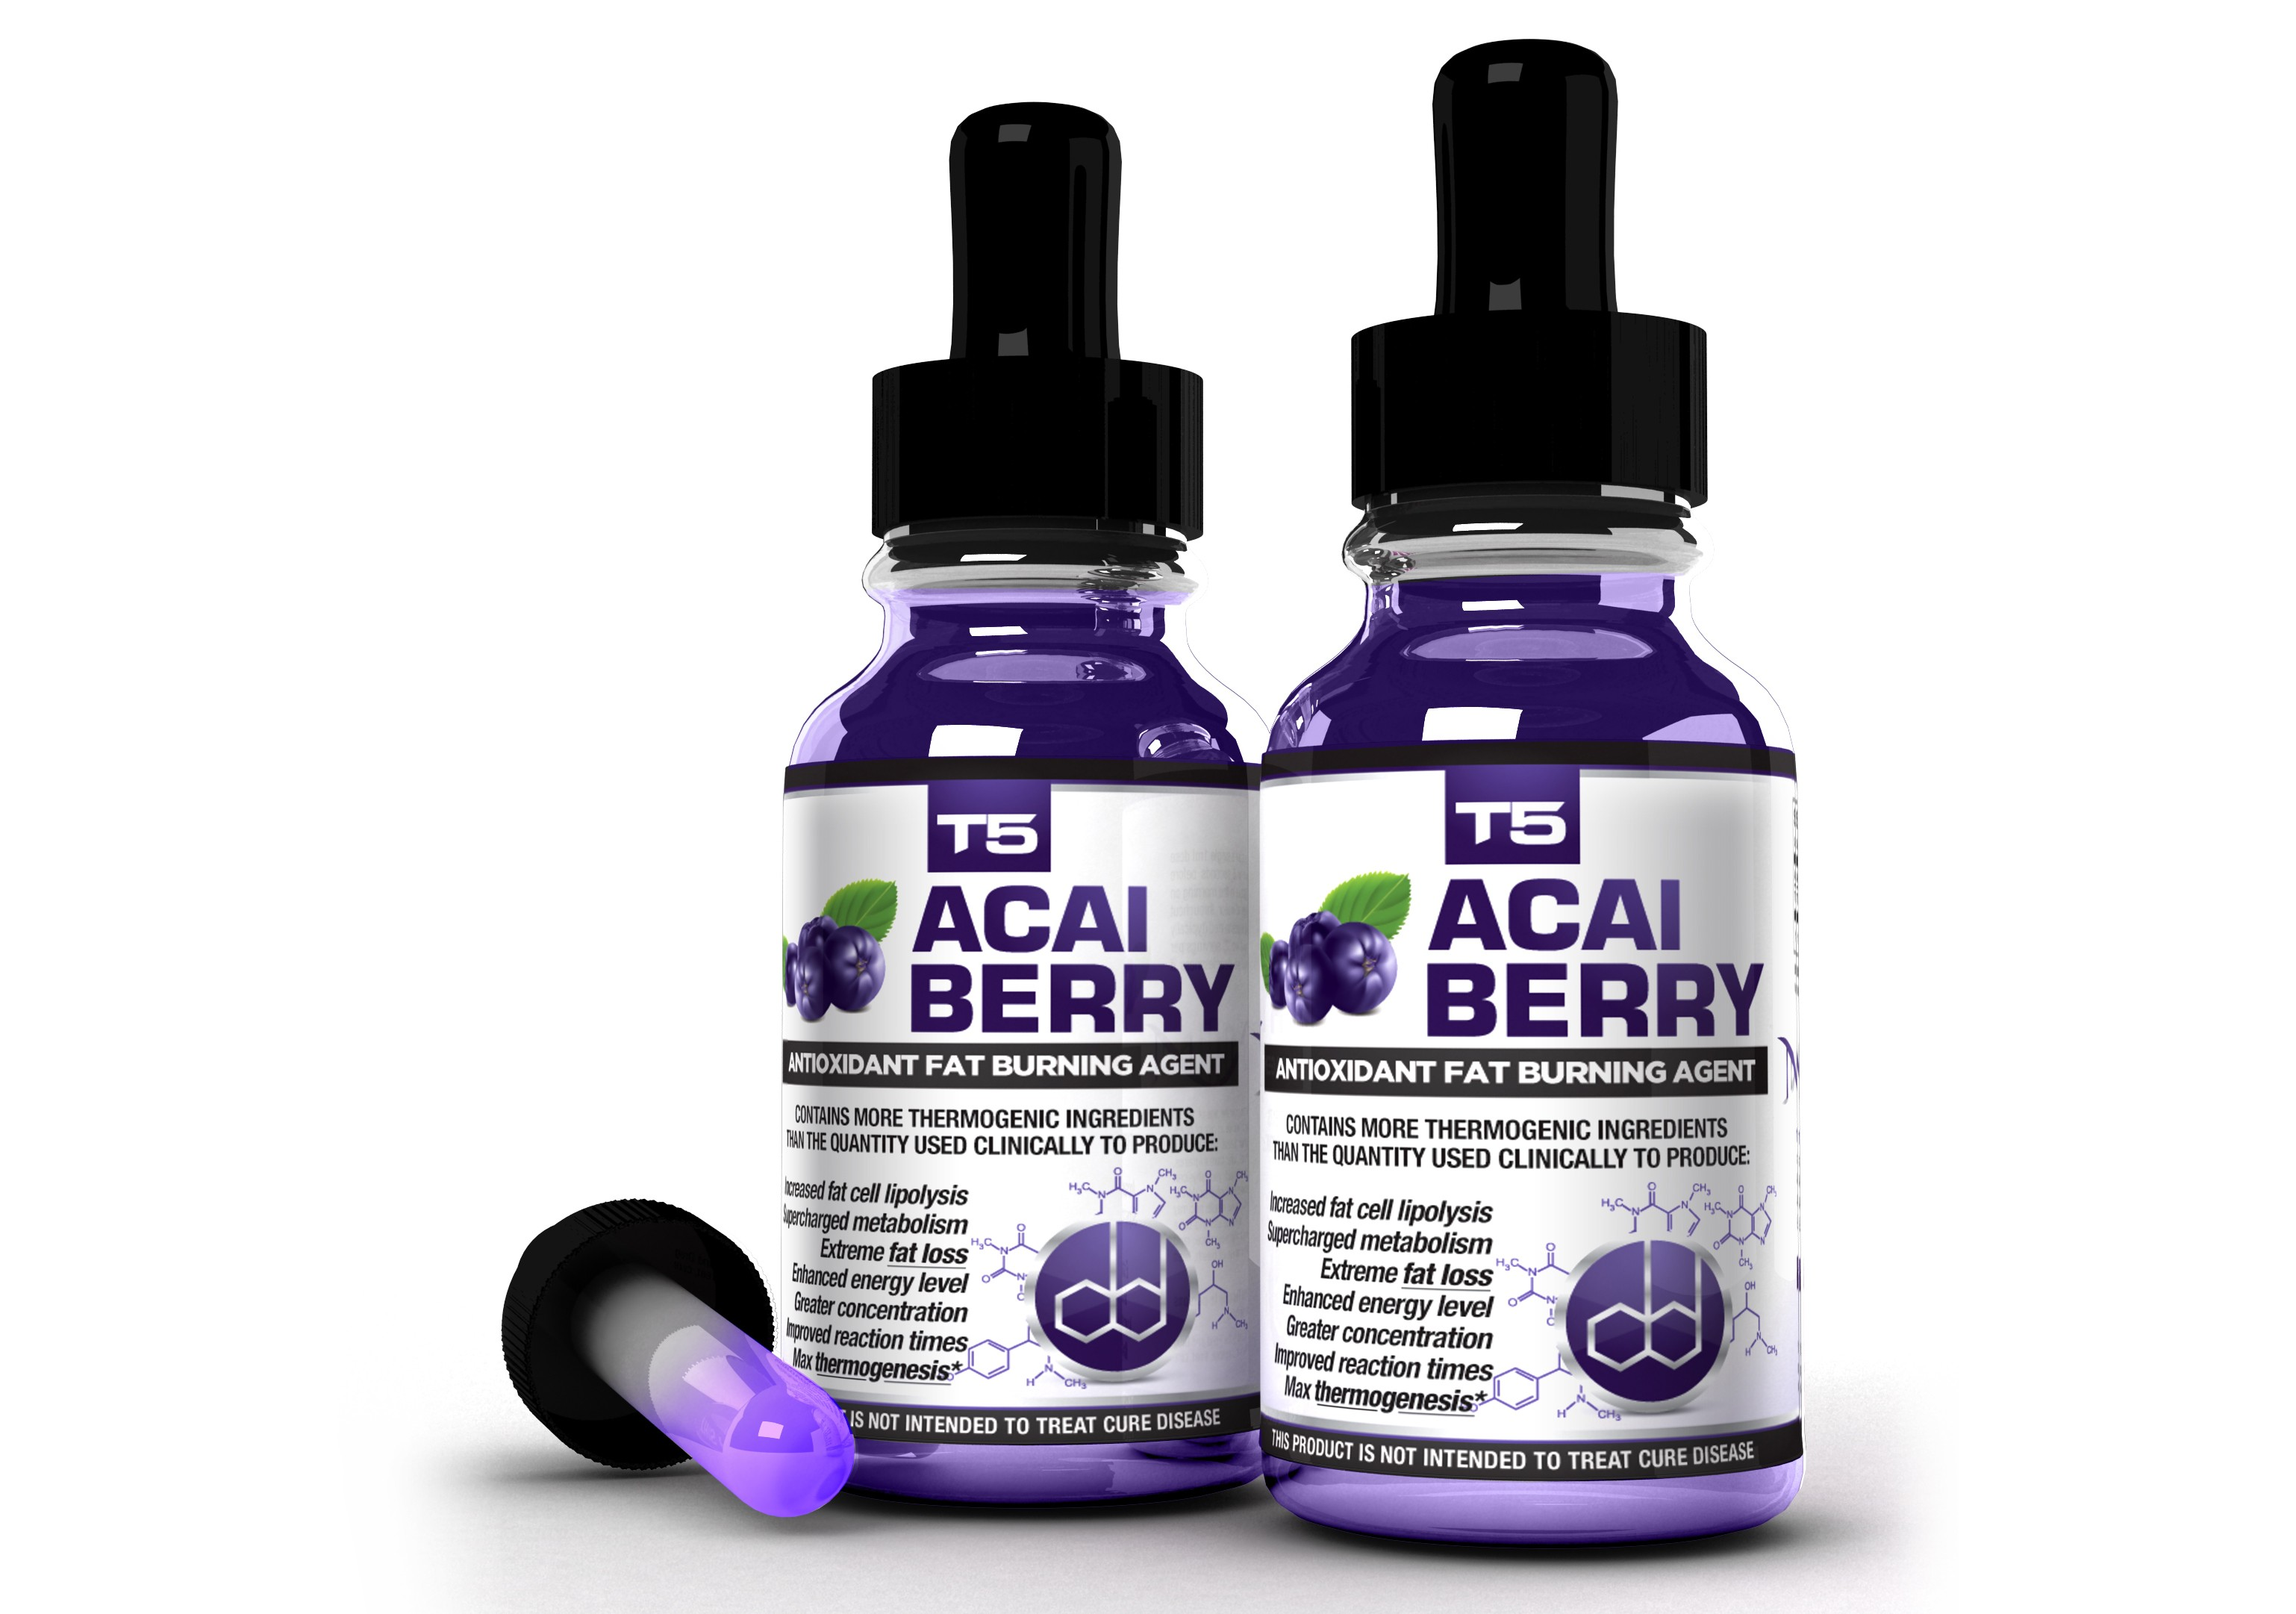 T5 Acai Berry 2 Bottle Bundle